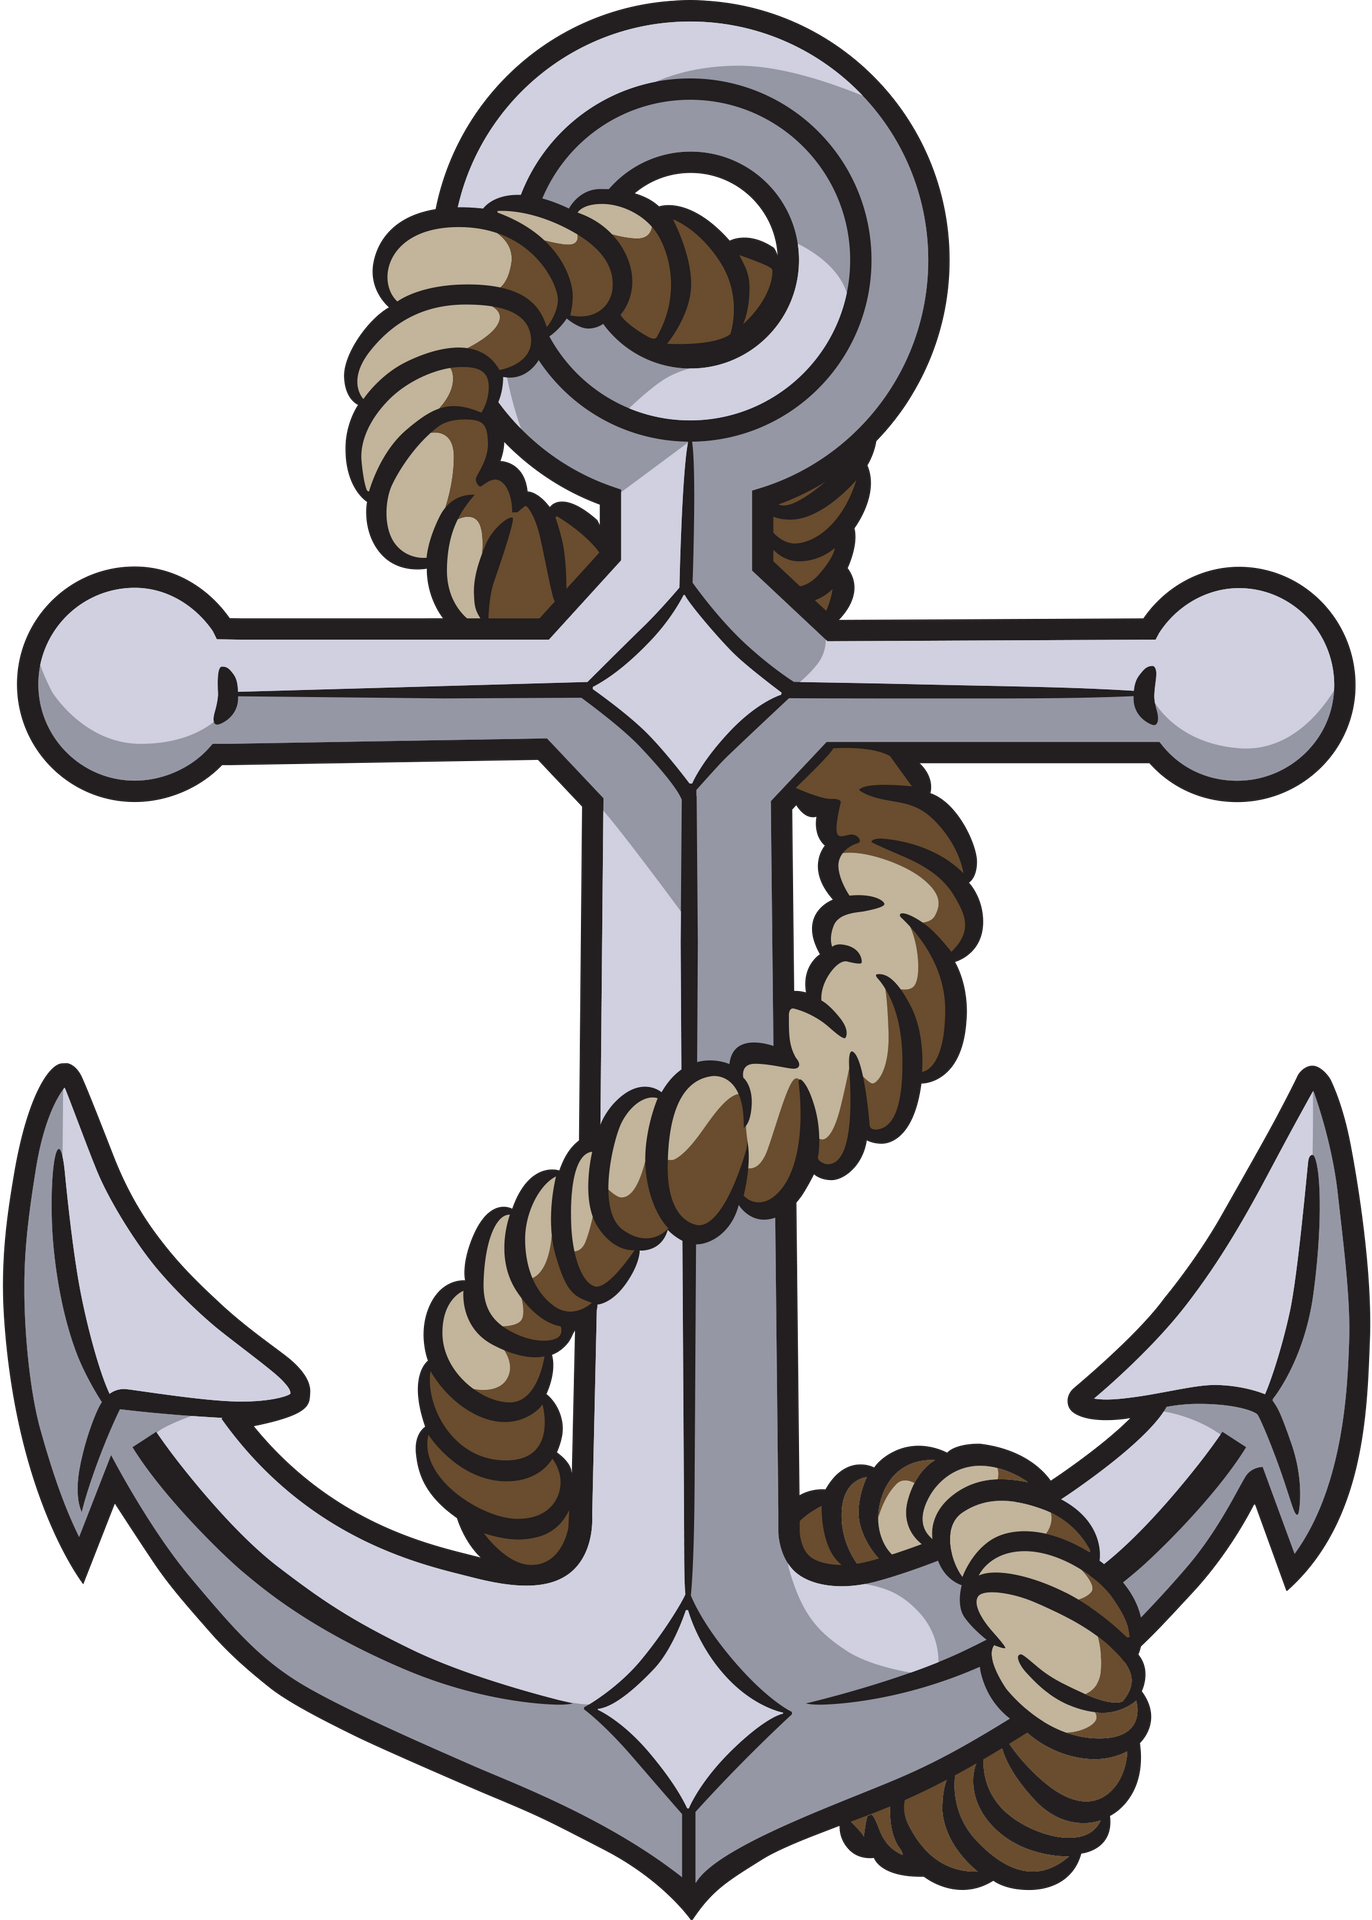 United states seals clip. Clipart anchor navy canadian